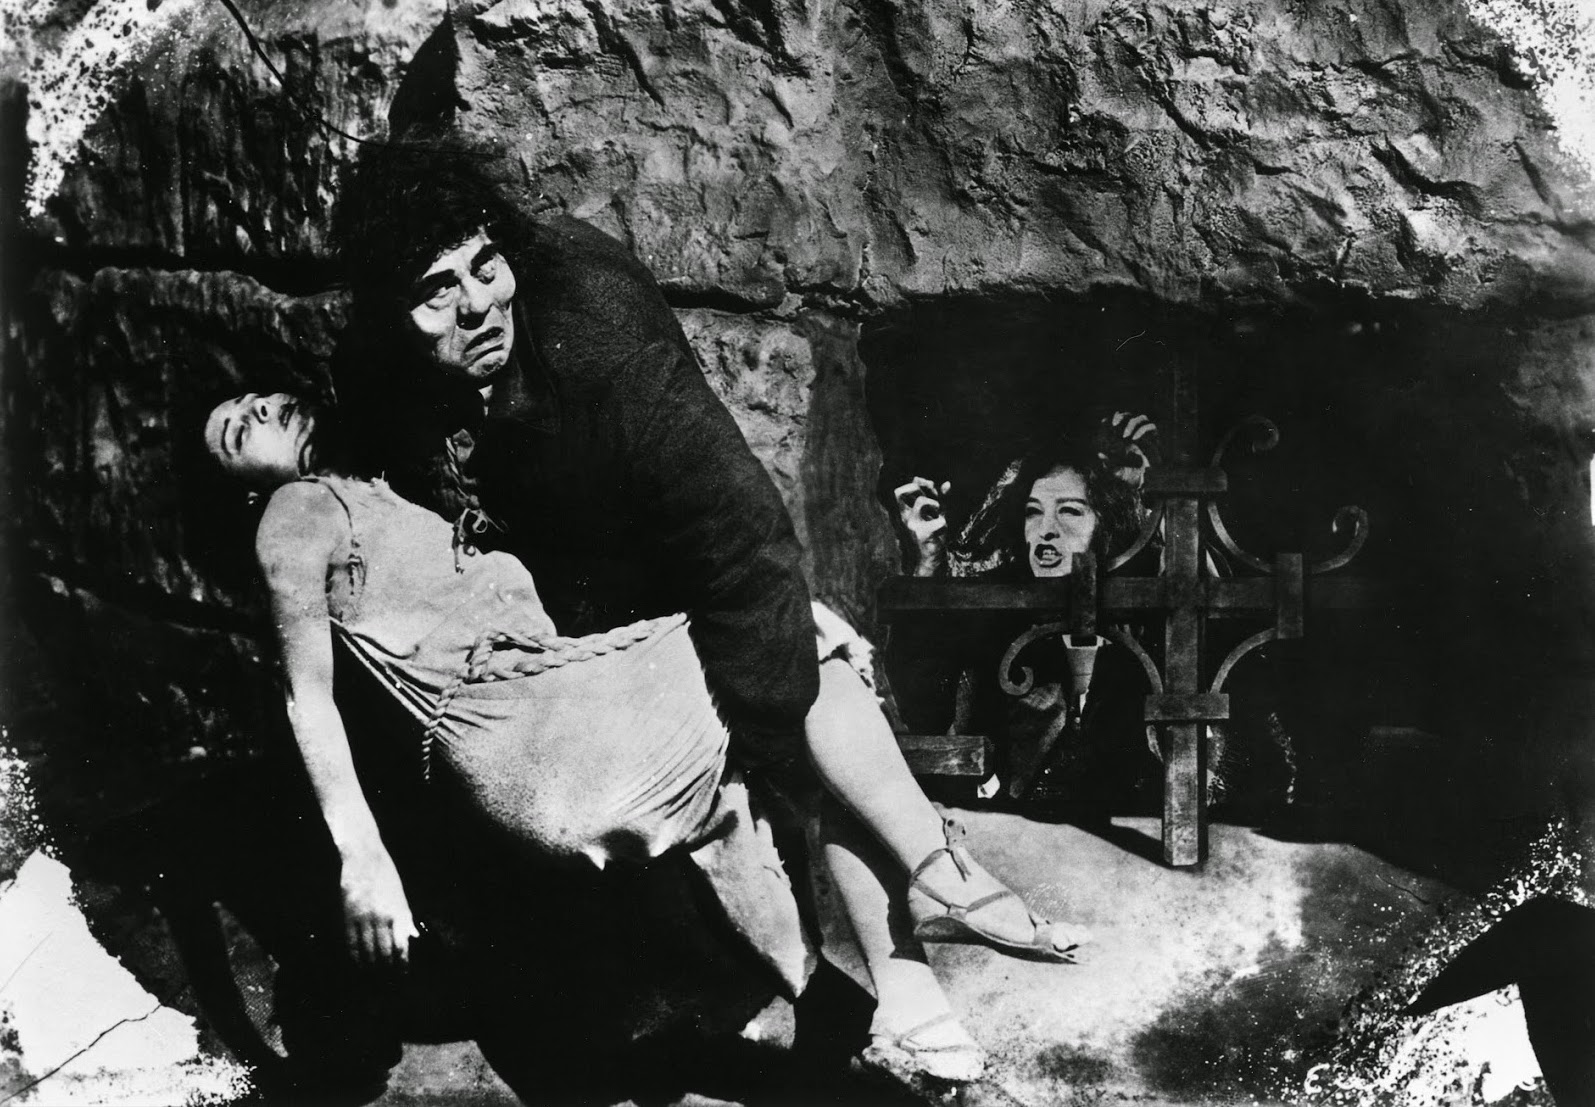 Films in London today: THE HUNCHBACK OF NOTRE DAME at Christ Church Southgate (13 OCT).